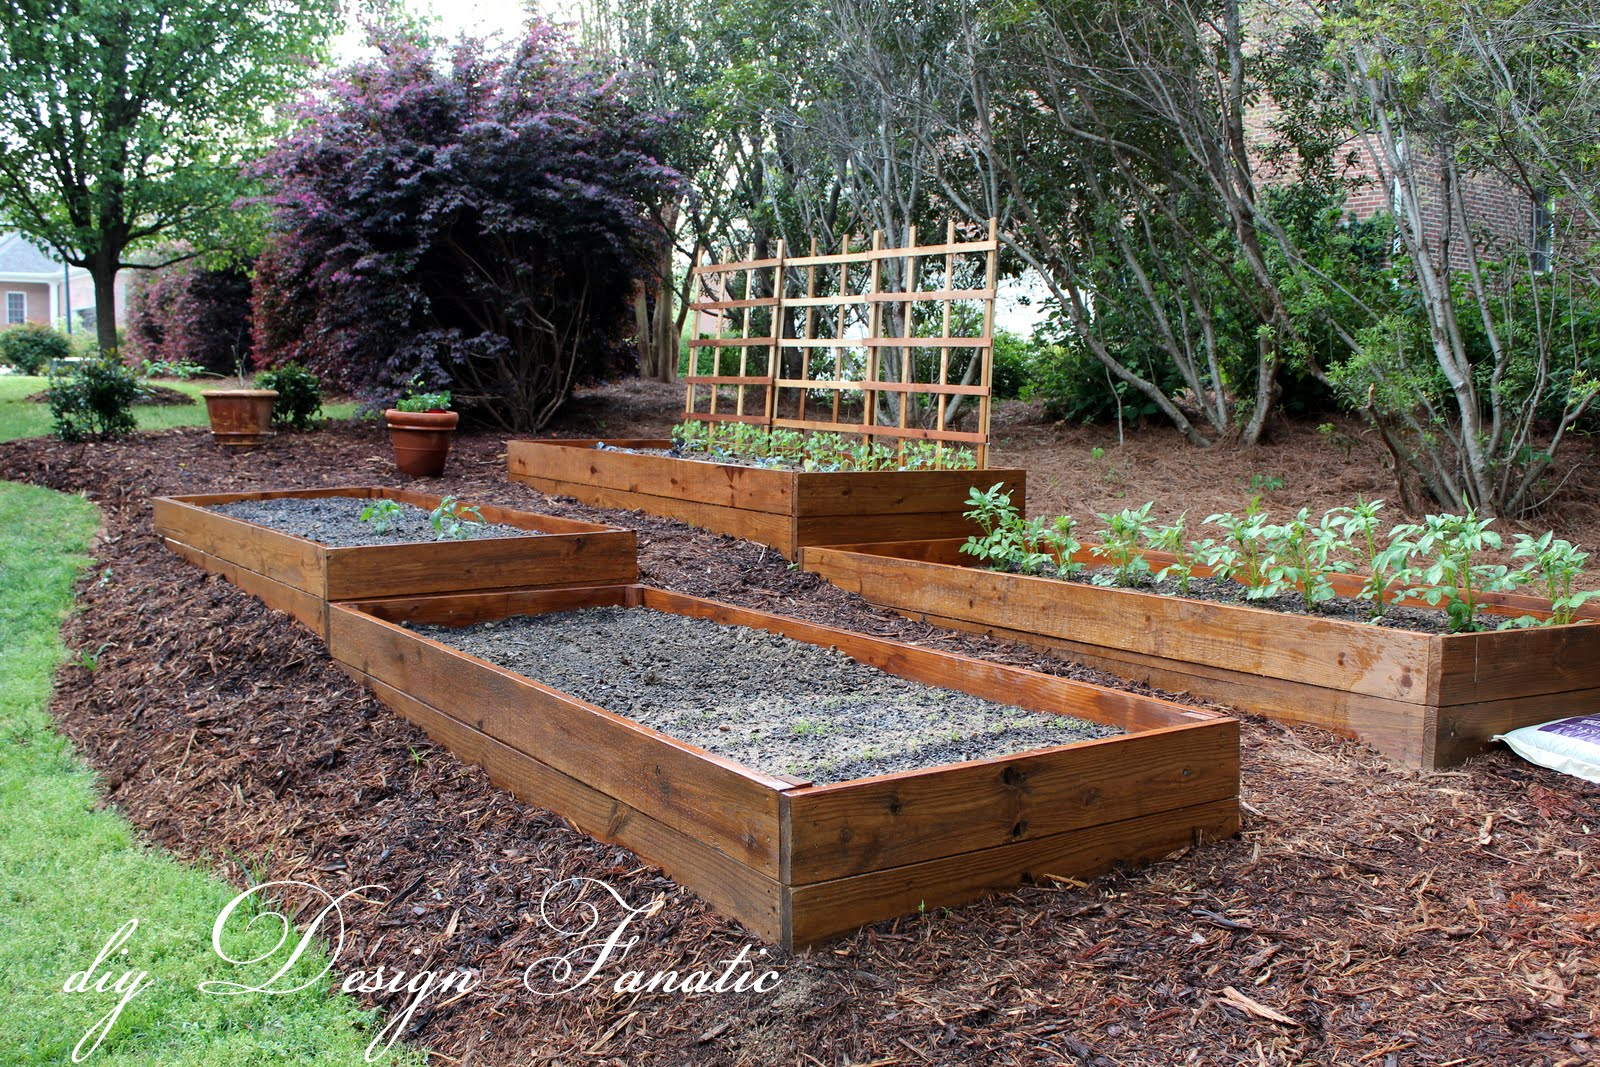 Diy design fanatic raised beds Raised garden beds